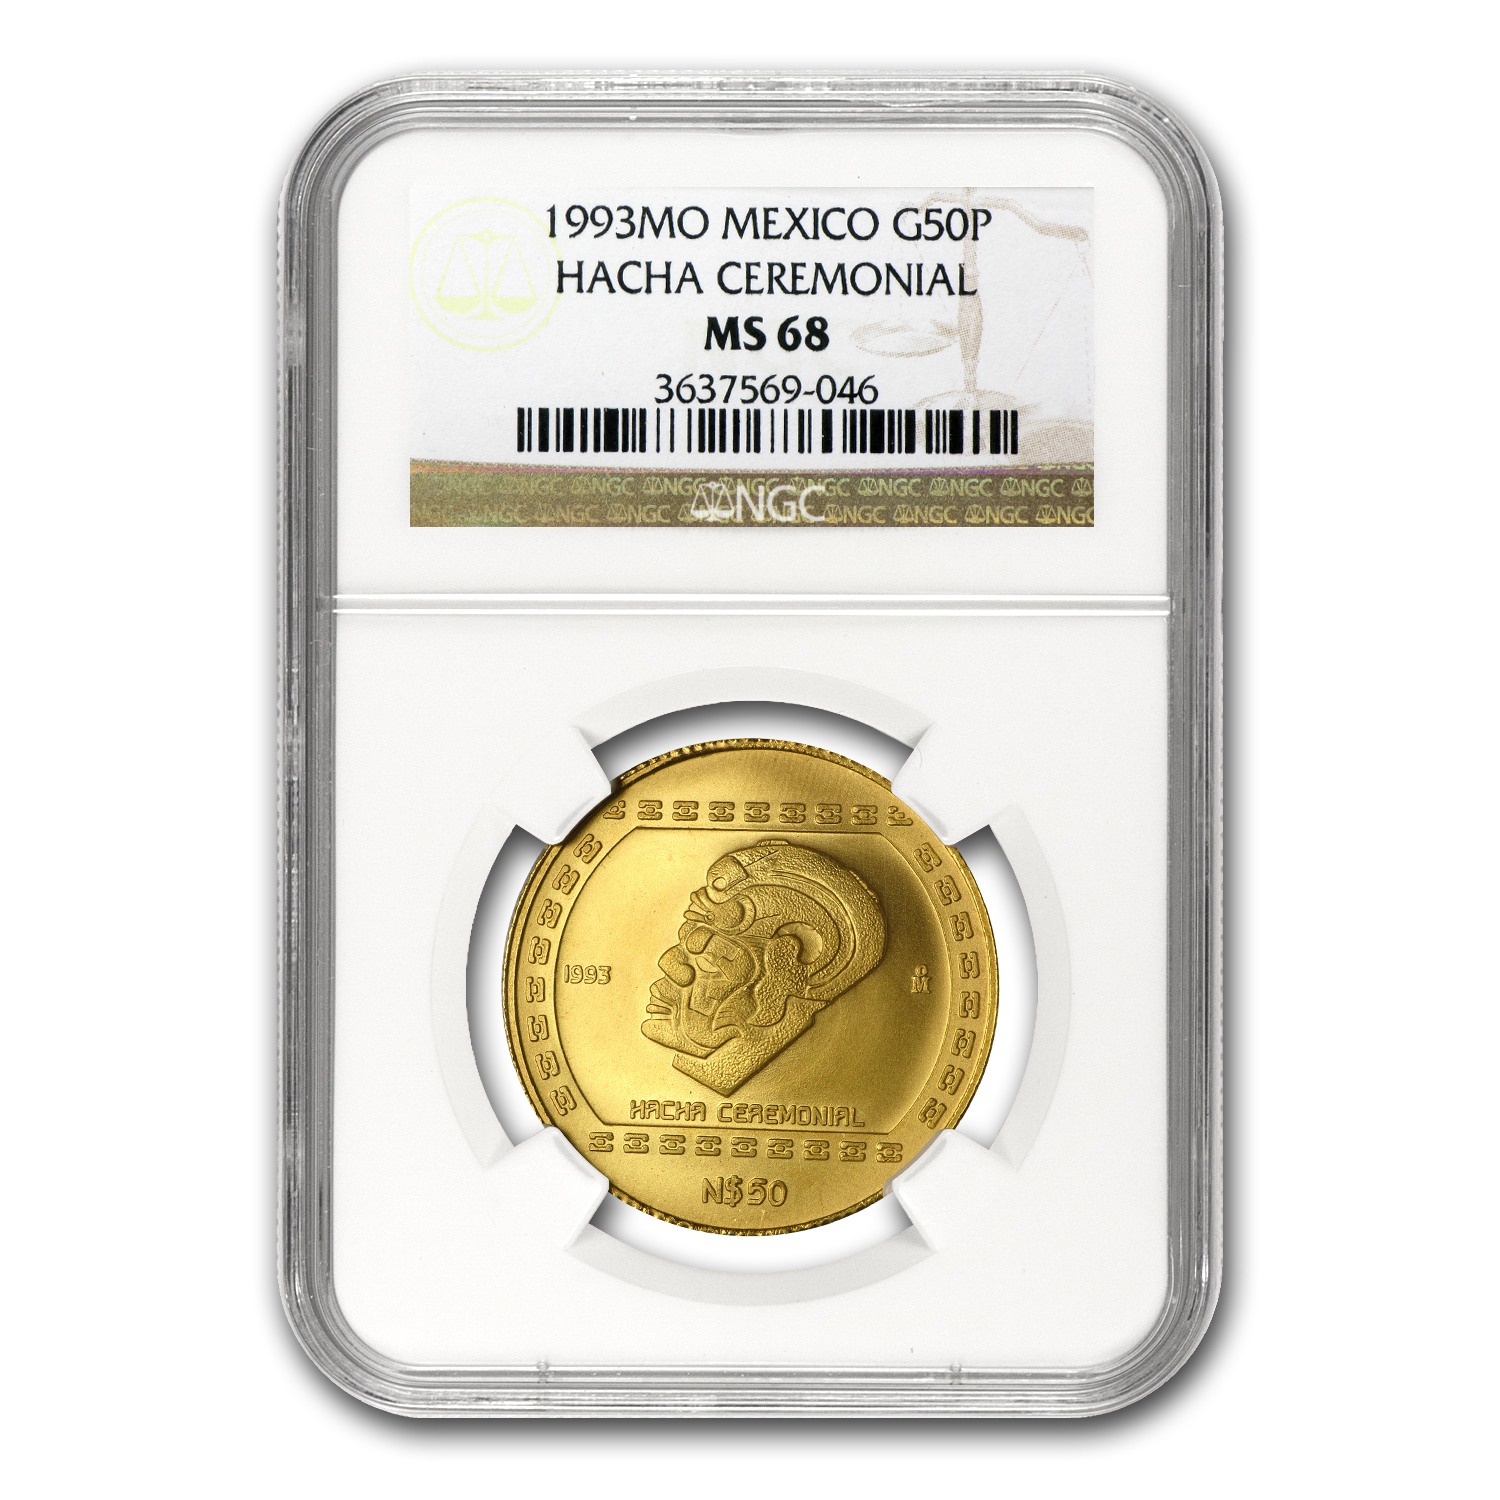 1993 Mexico 50 Pesos Gold Hacha Ceremonial MS-68 NGC